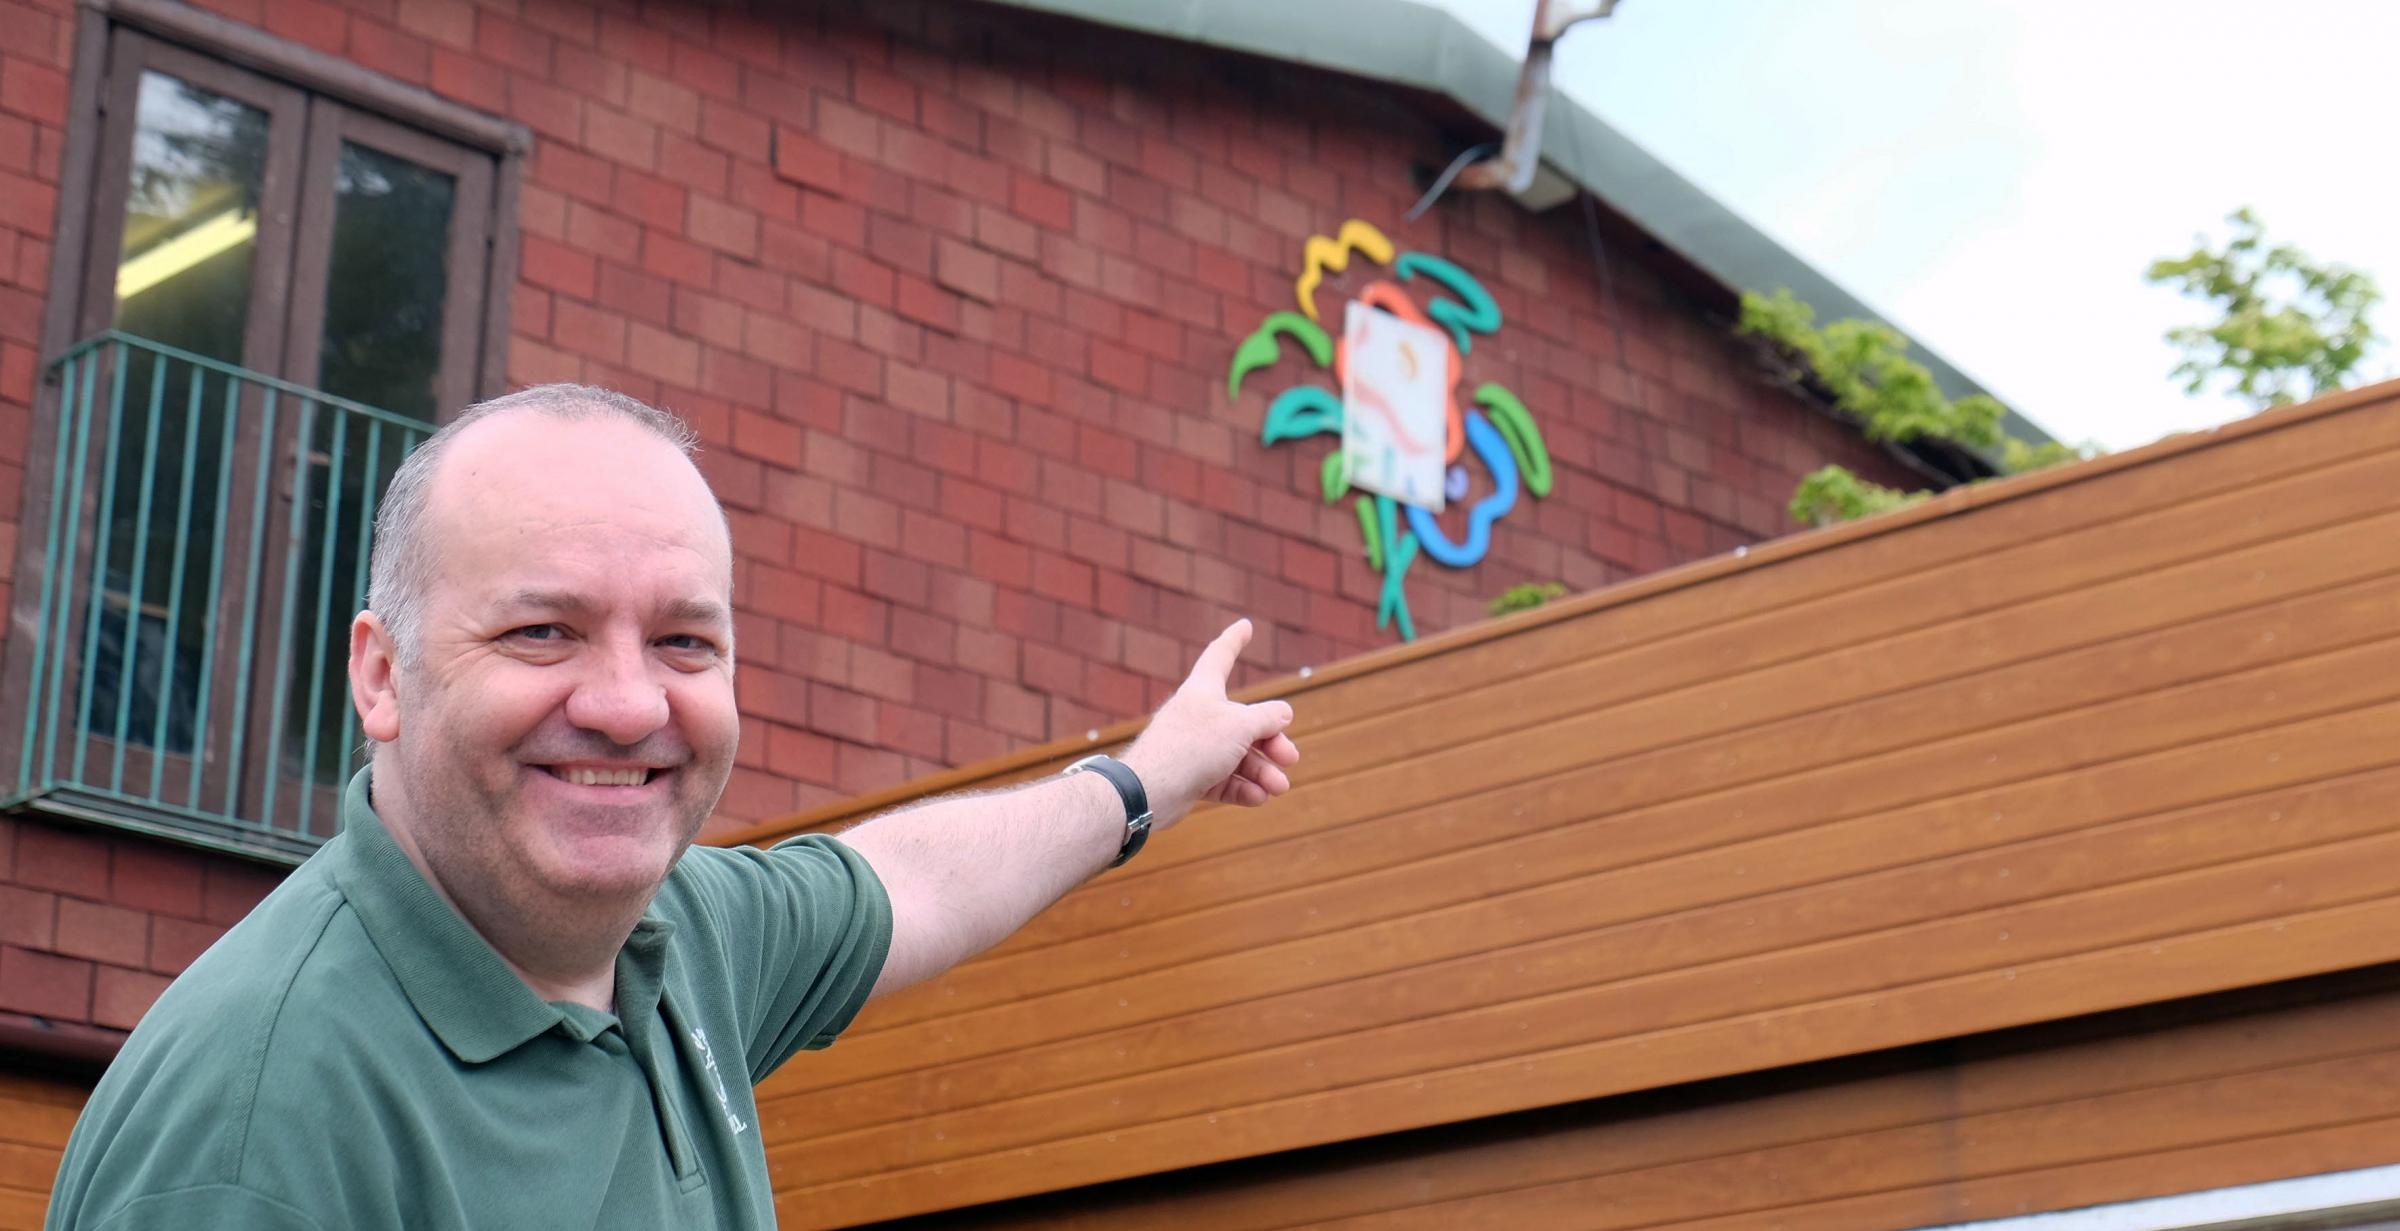 Cardwell garden centre retail general manager, Paul Carmichael, points out relics of the 1988 festival